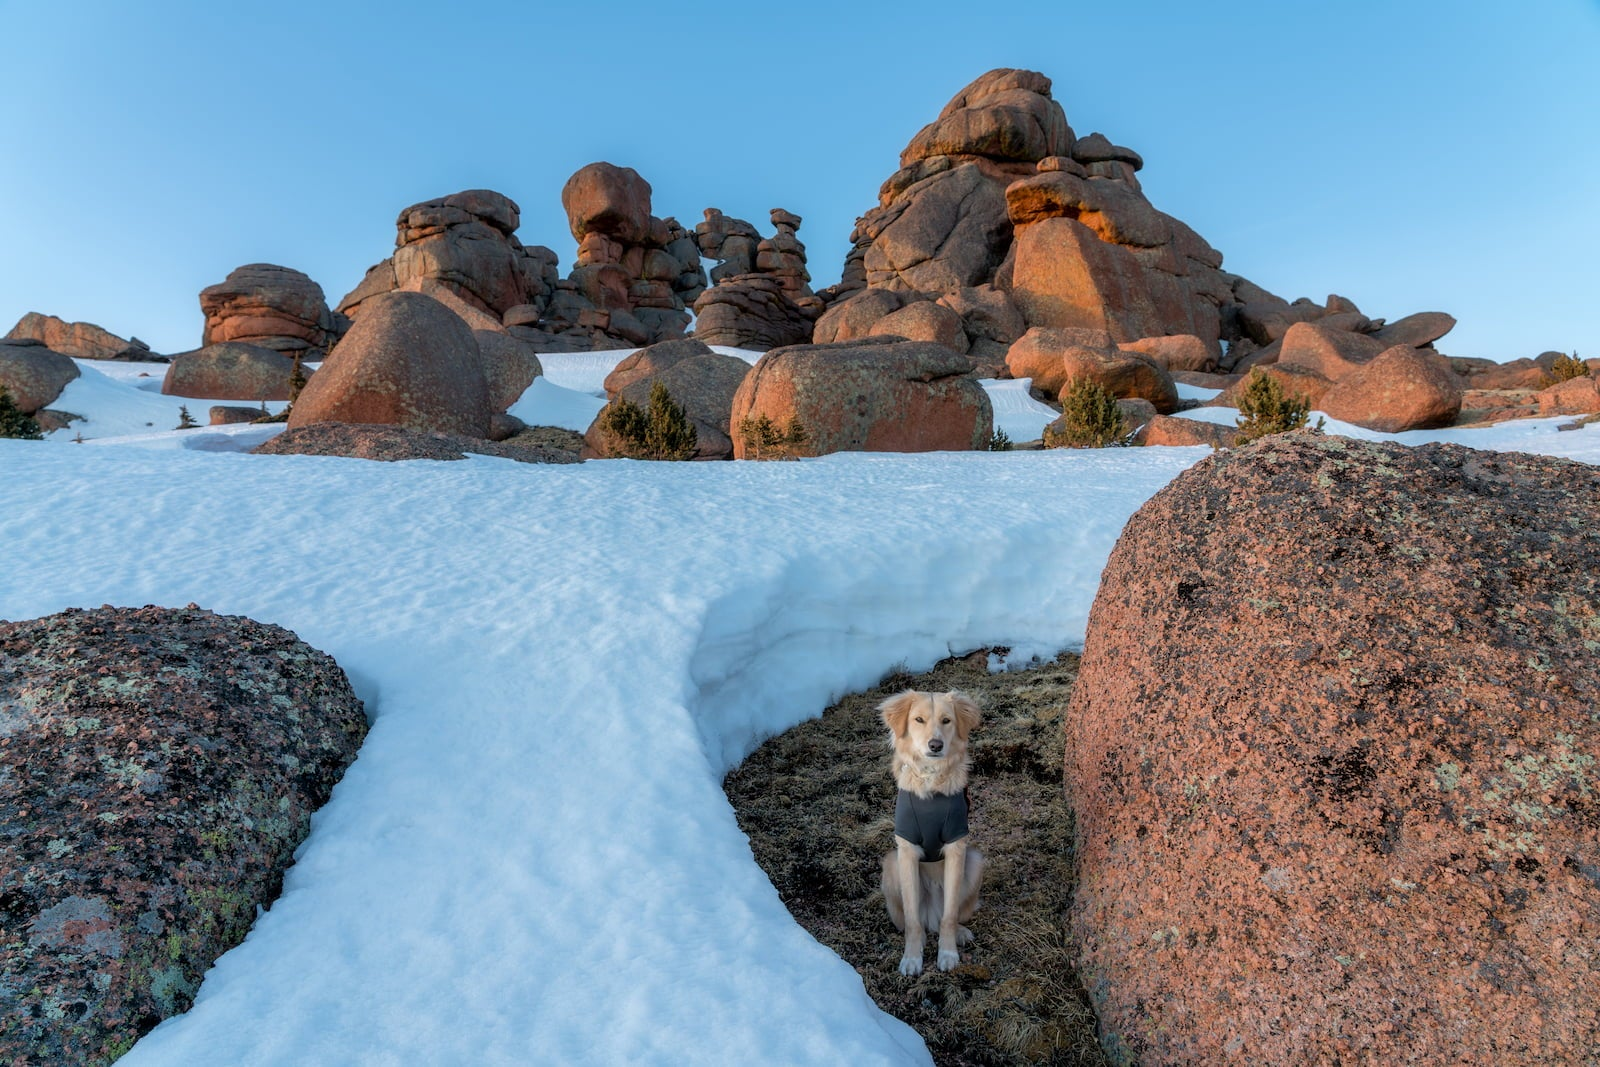 Dog in jacket sitting within snow covered red rock landscape.